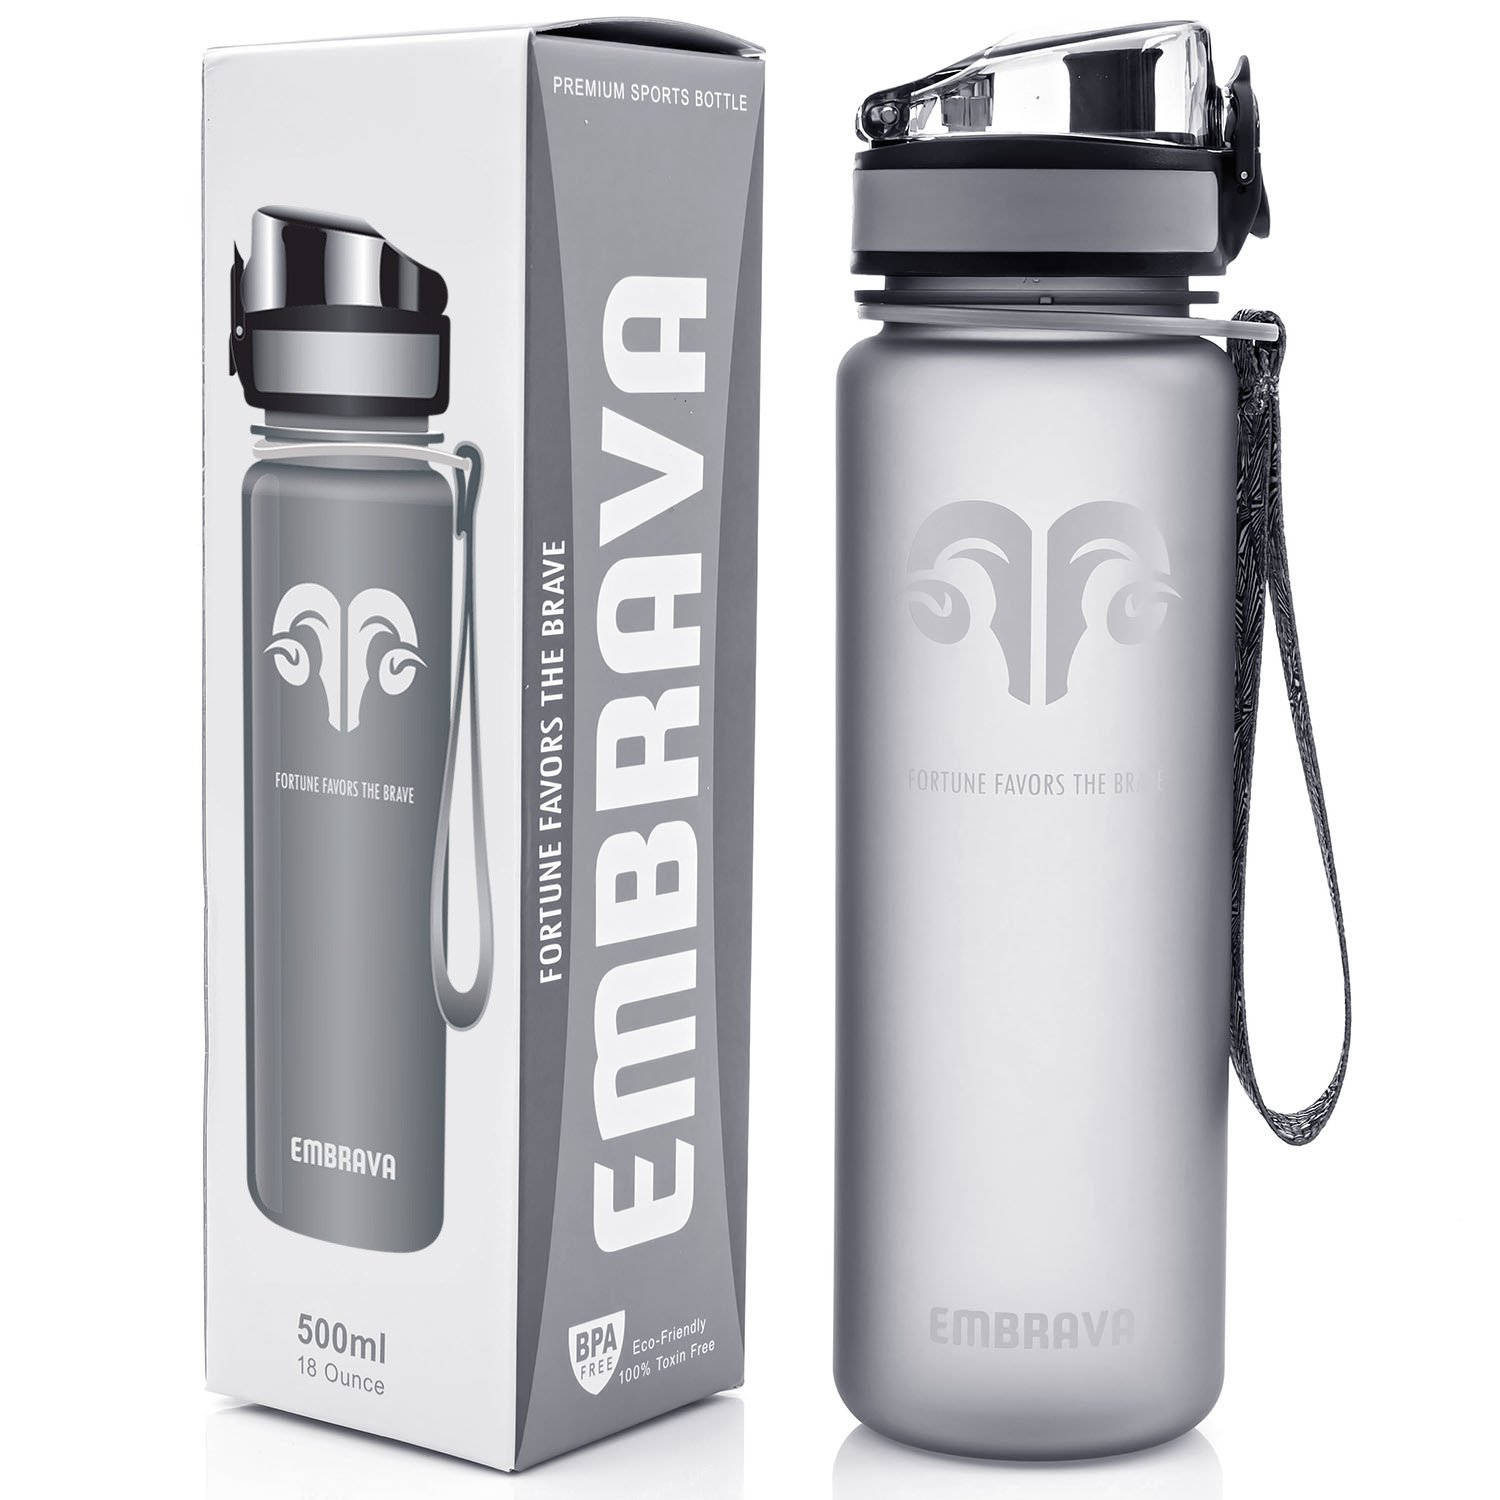 Best Sports Water Bottle - 18oz Small - Eco Friendly & BPA-Free Plastic - Fast Water Flow, Flip Top Lid, Opens With 1-Click